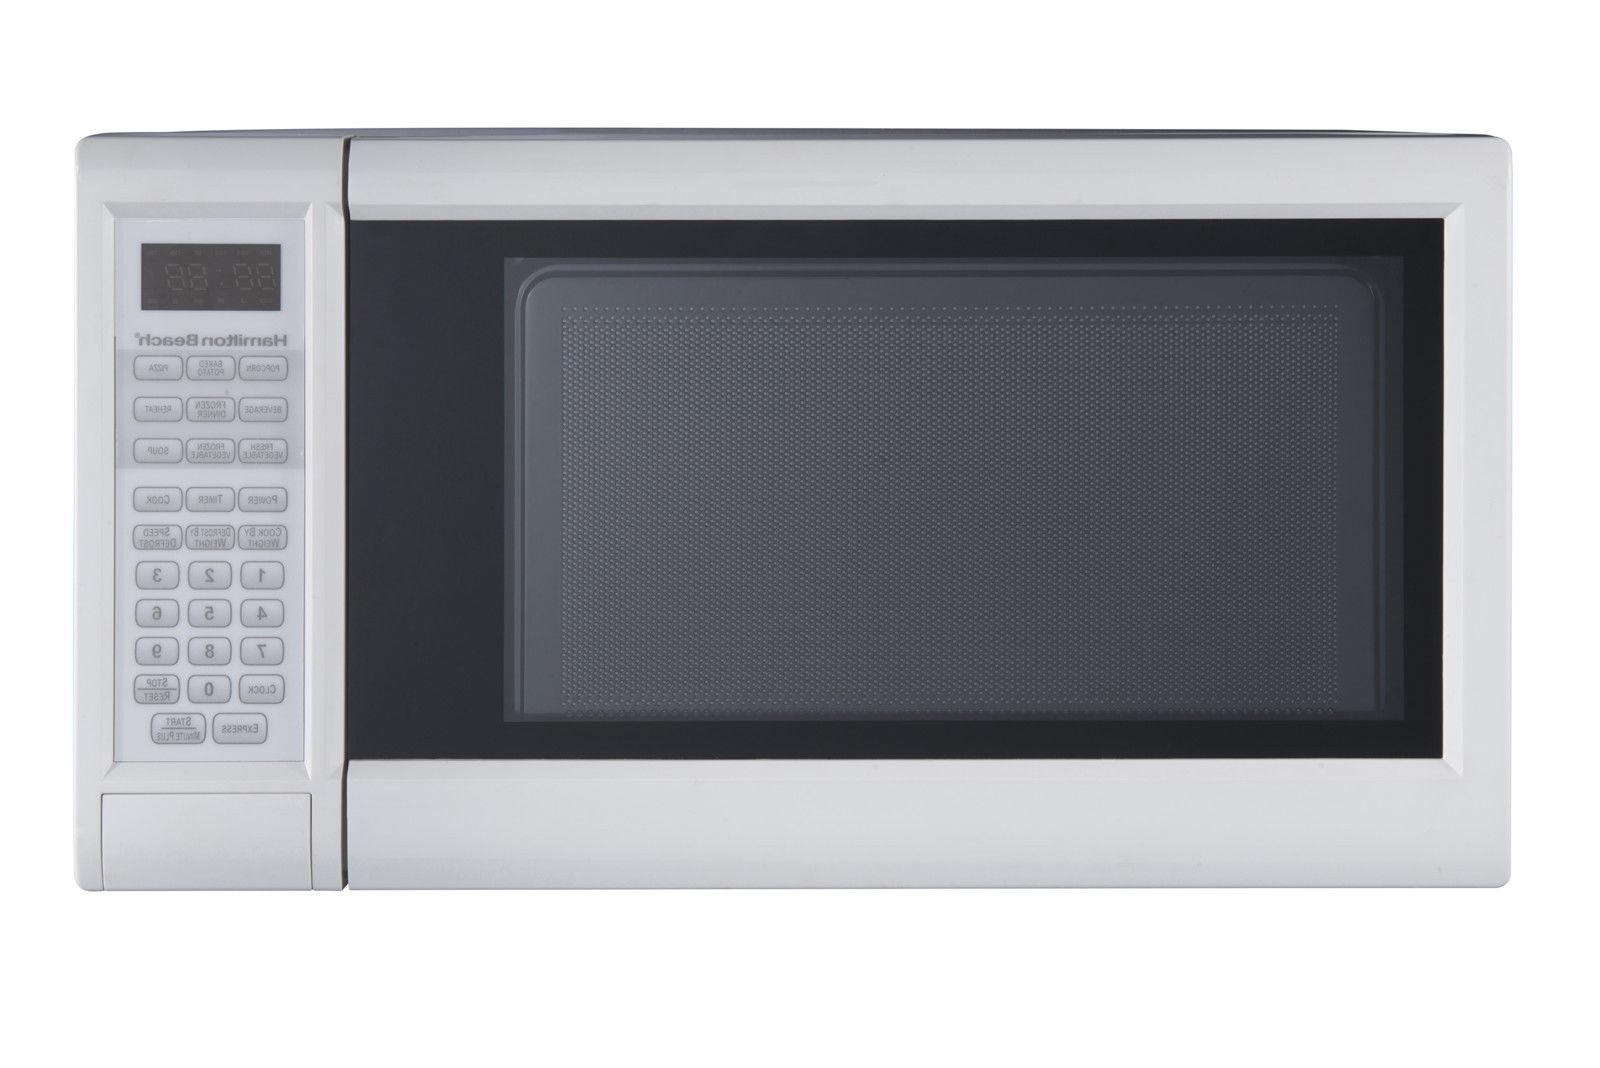 Hamilton 1.3 cu.ft. Digital Microwave Oven Cooking Food Home